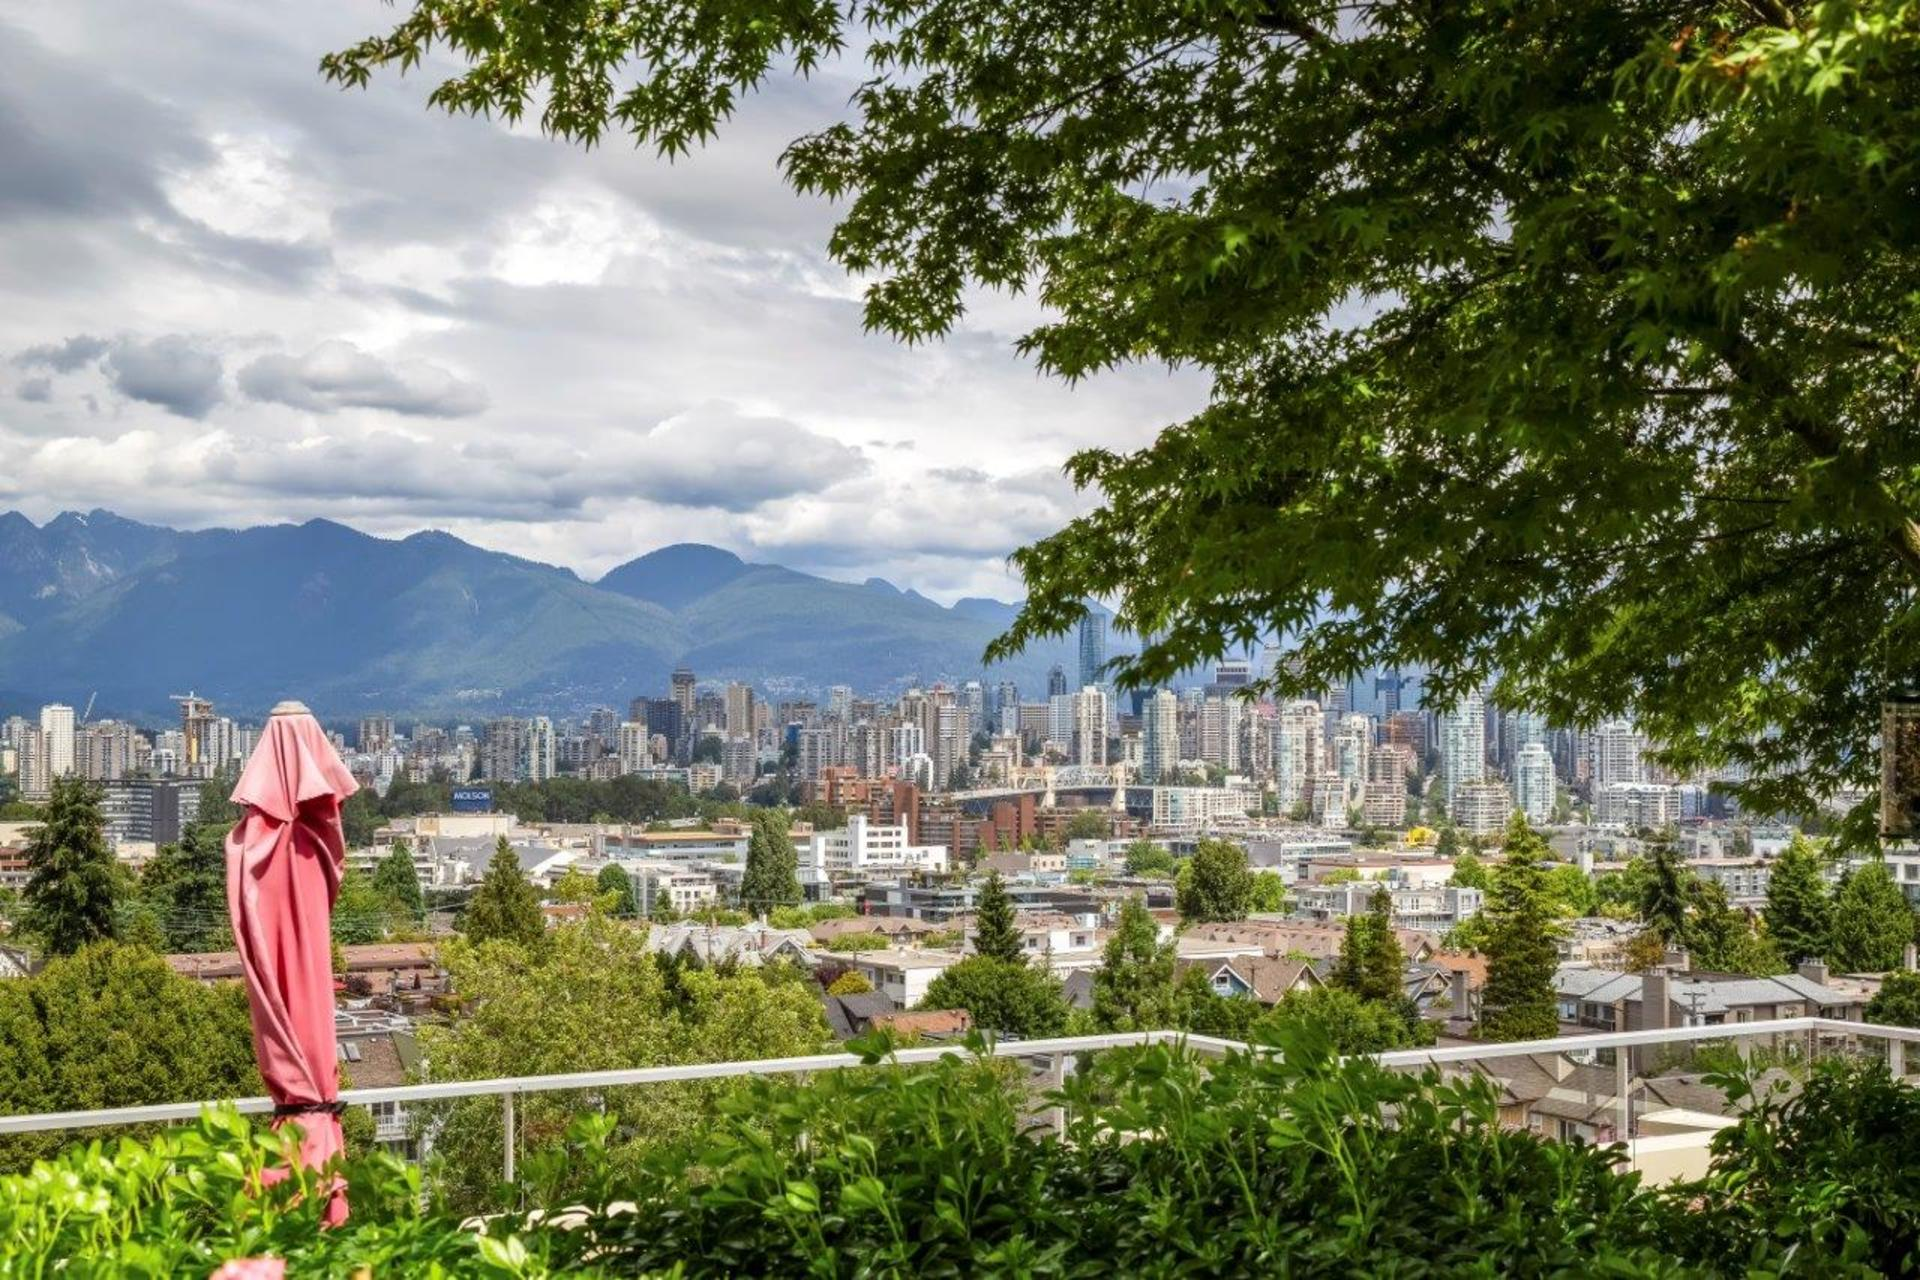 2528maple-17 at 708 - 2528 Maple Street, Kitsilano, Vancouver West